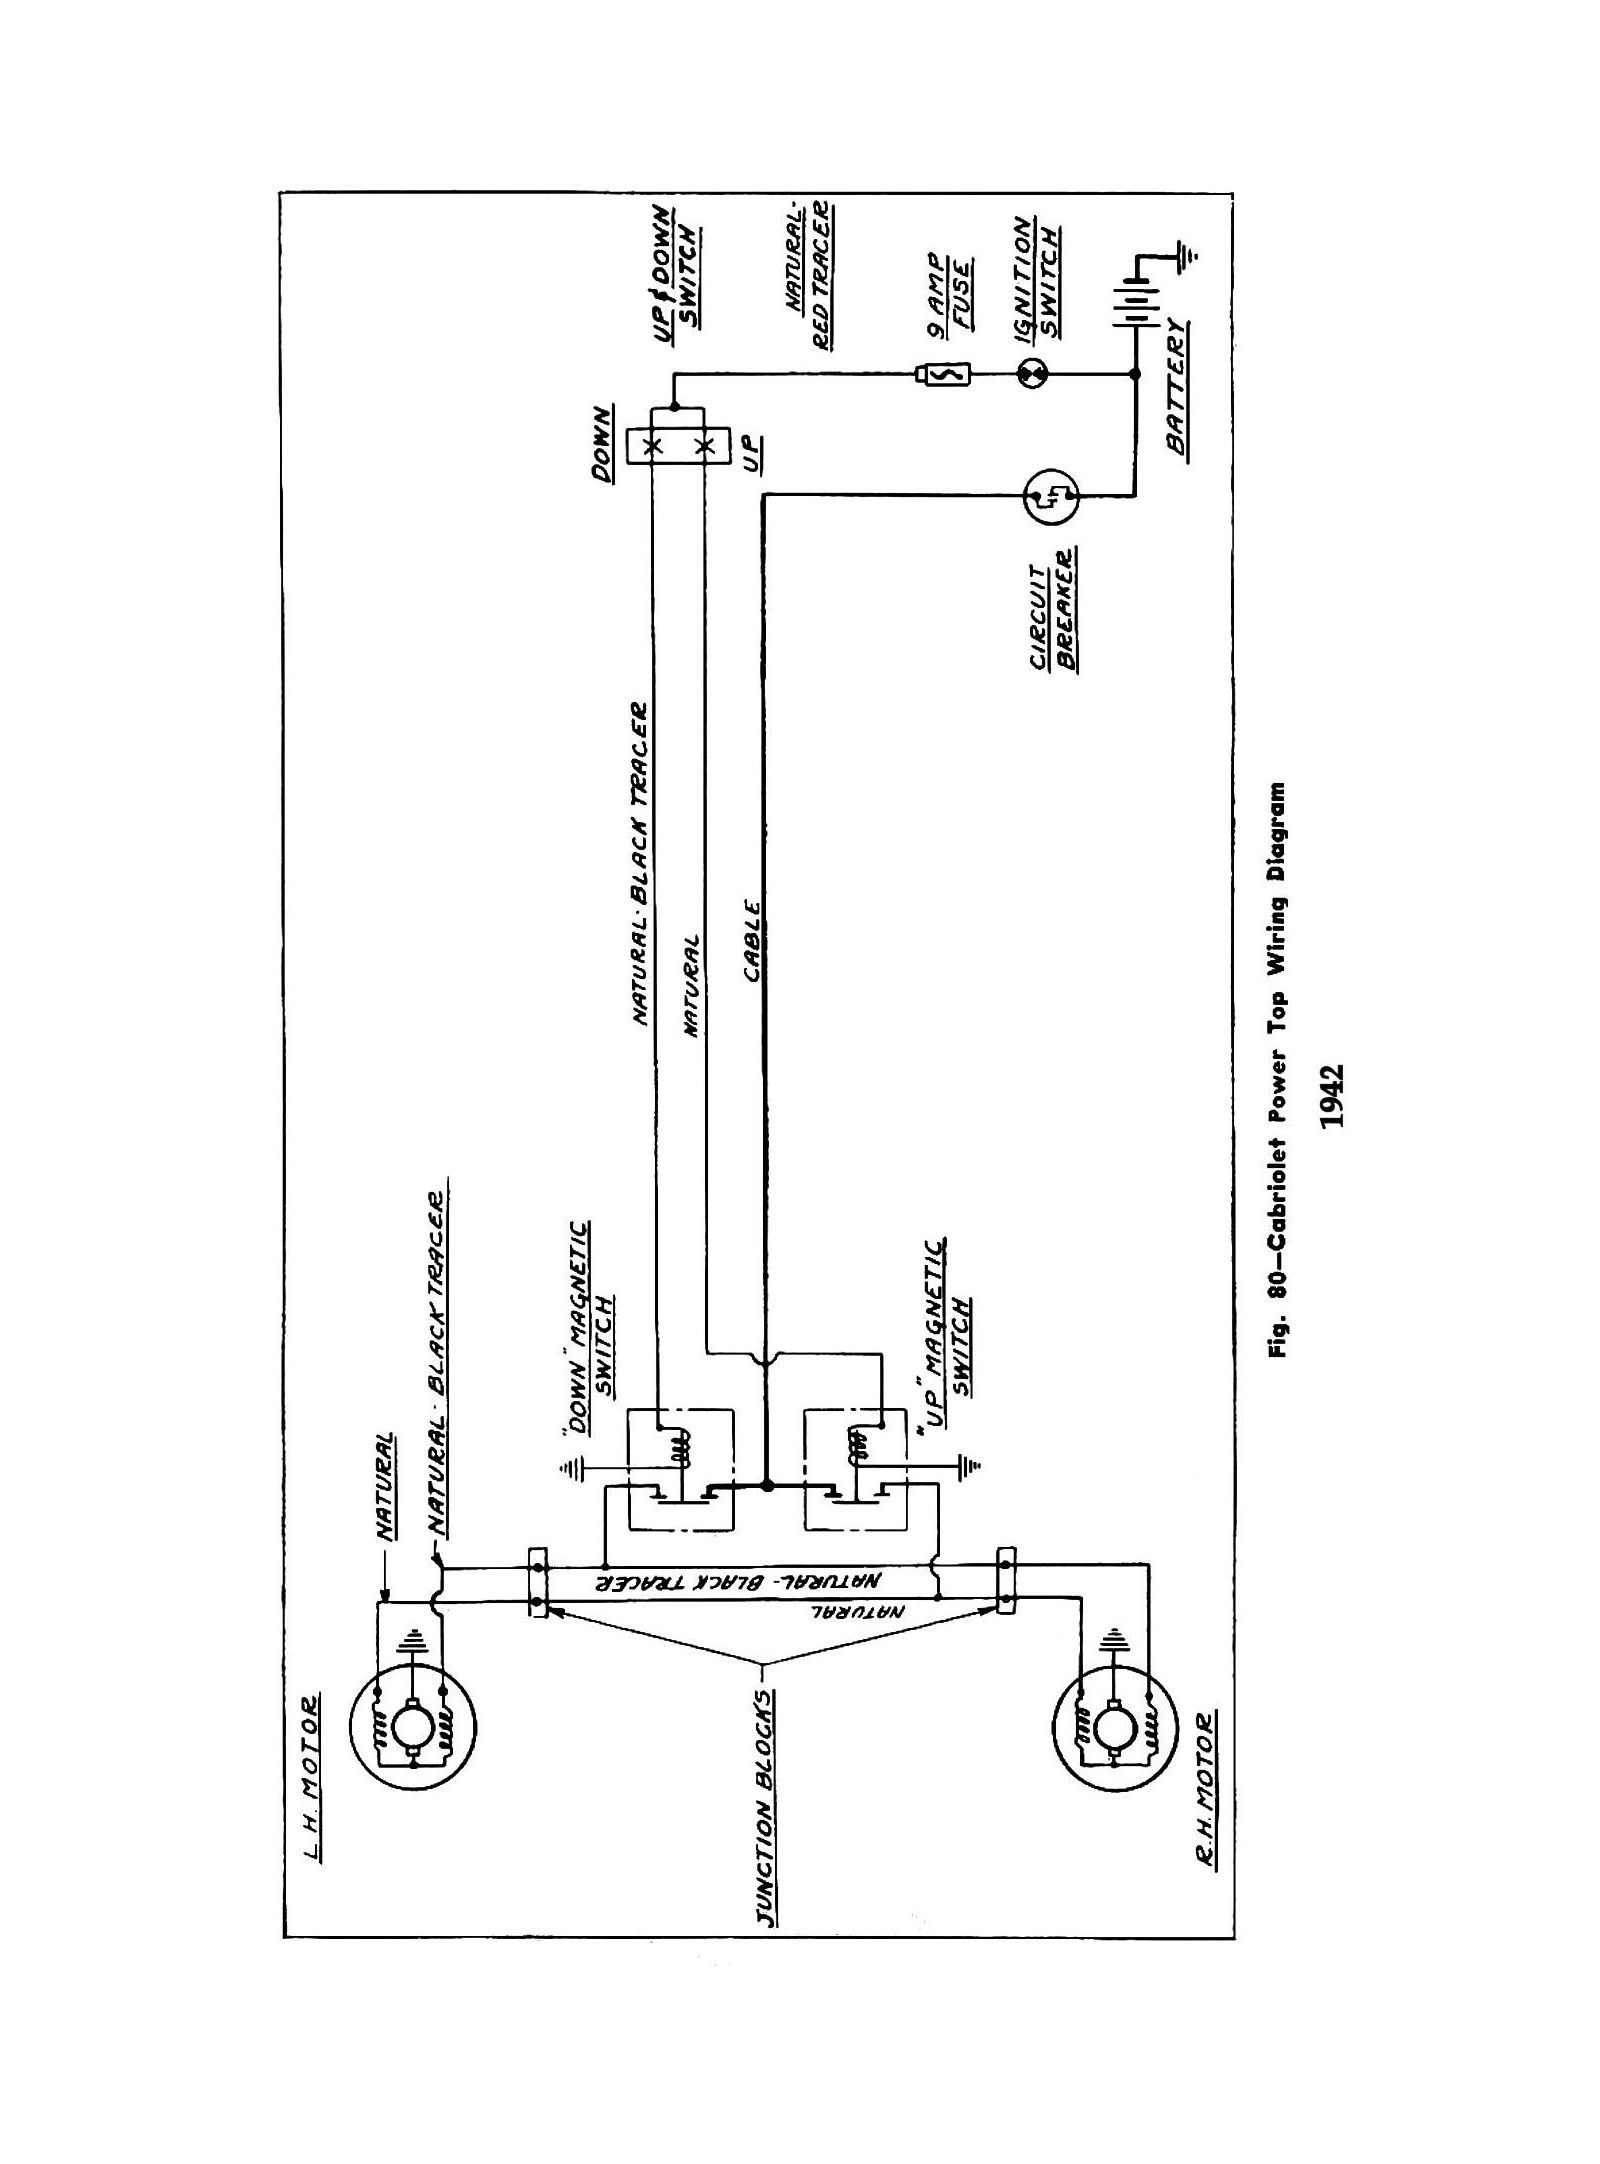 1950 Chevy Wiring Diagram Libraries 1959 Todays1950 Pickup Library